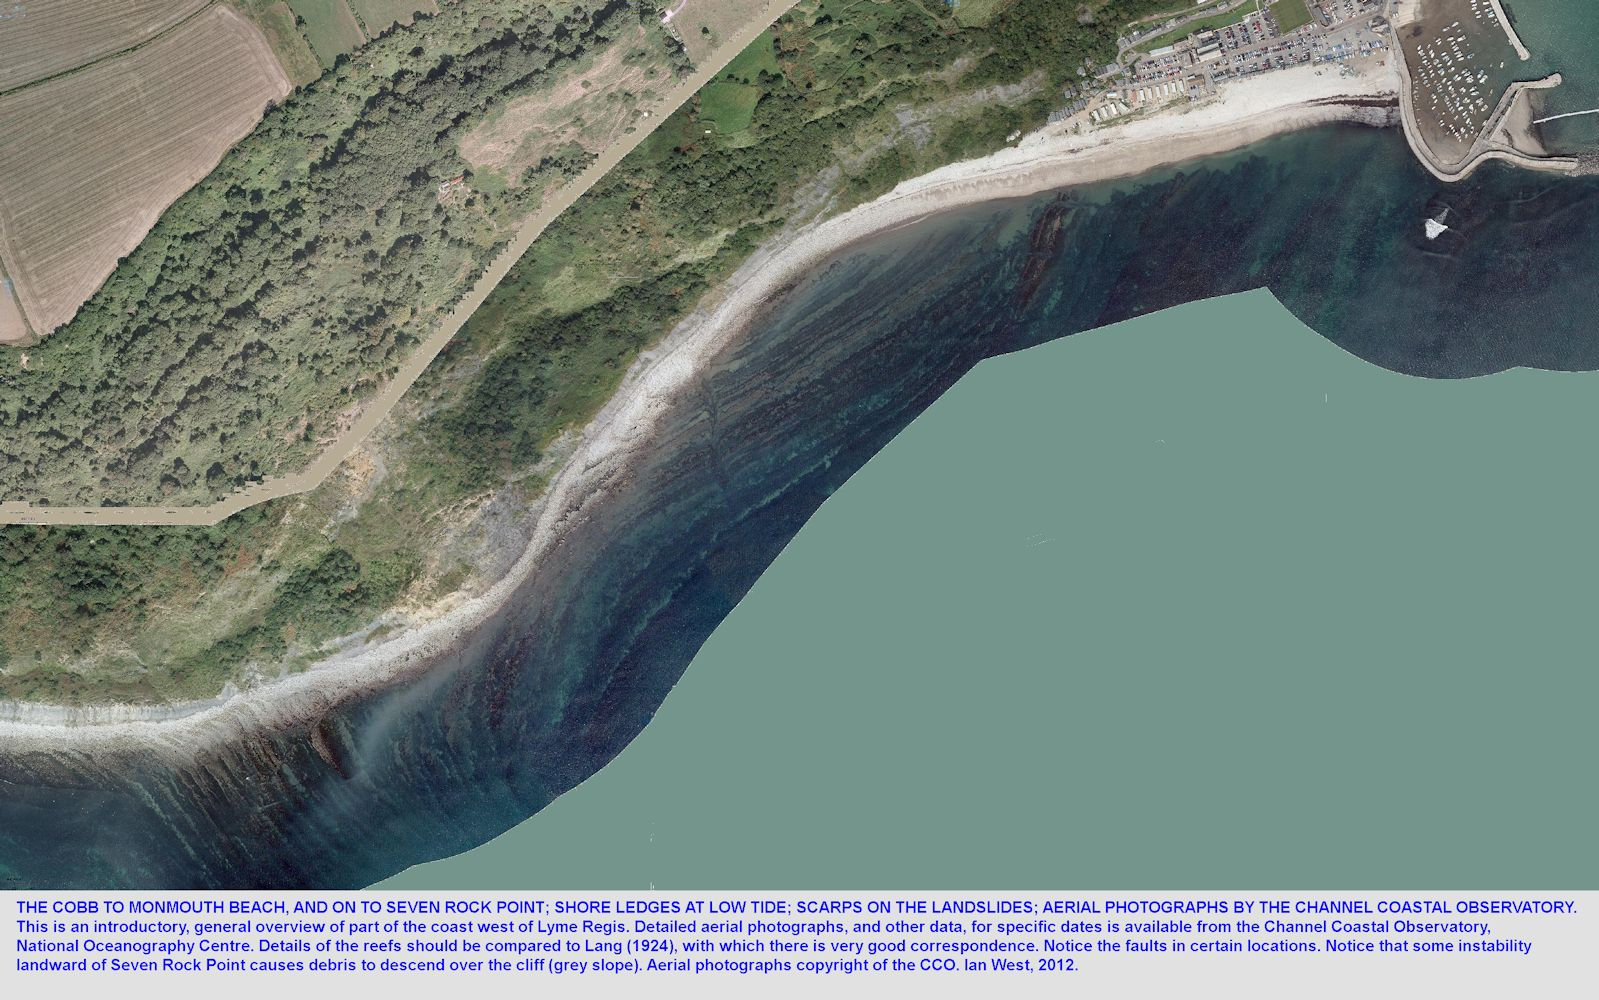 The Blue Lias ledges and cliffs at Ware Cliffs west of Lyme Regis, Dorset, from the Cobb to Seven Rock Point, aerial photographs of the CCO